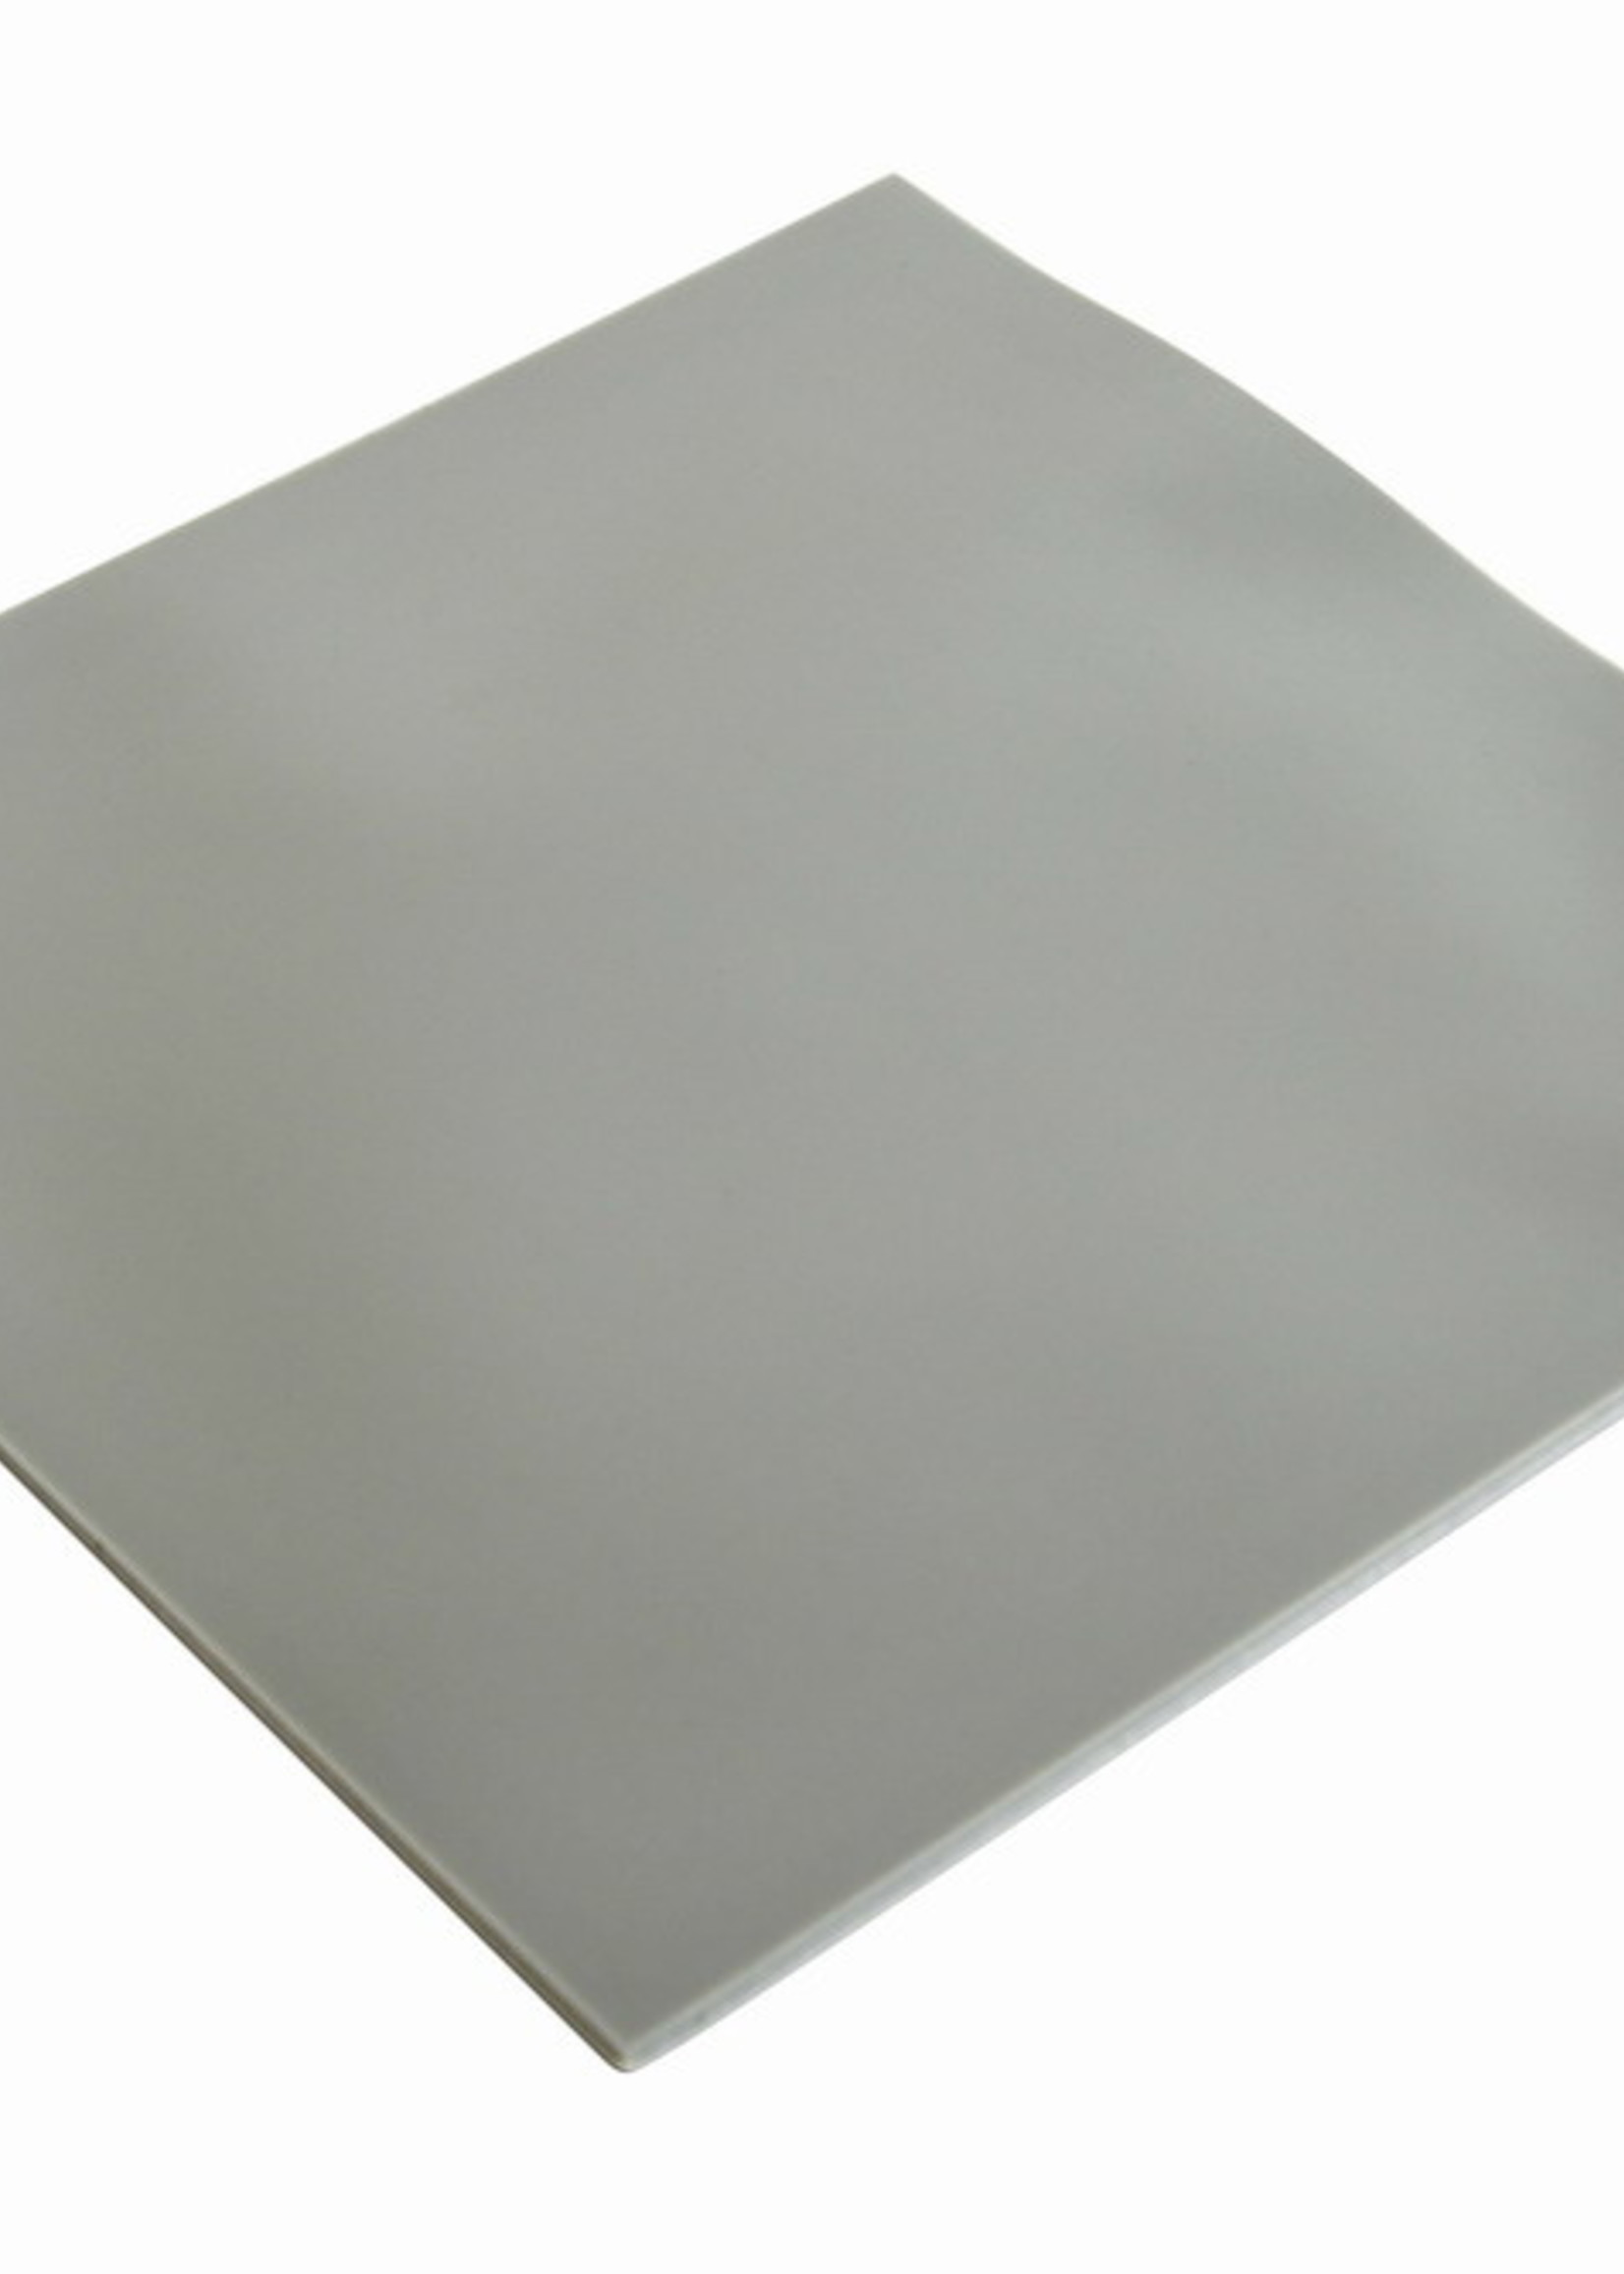 Gembird Heatsink silicone thermal pad